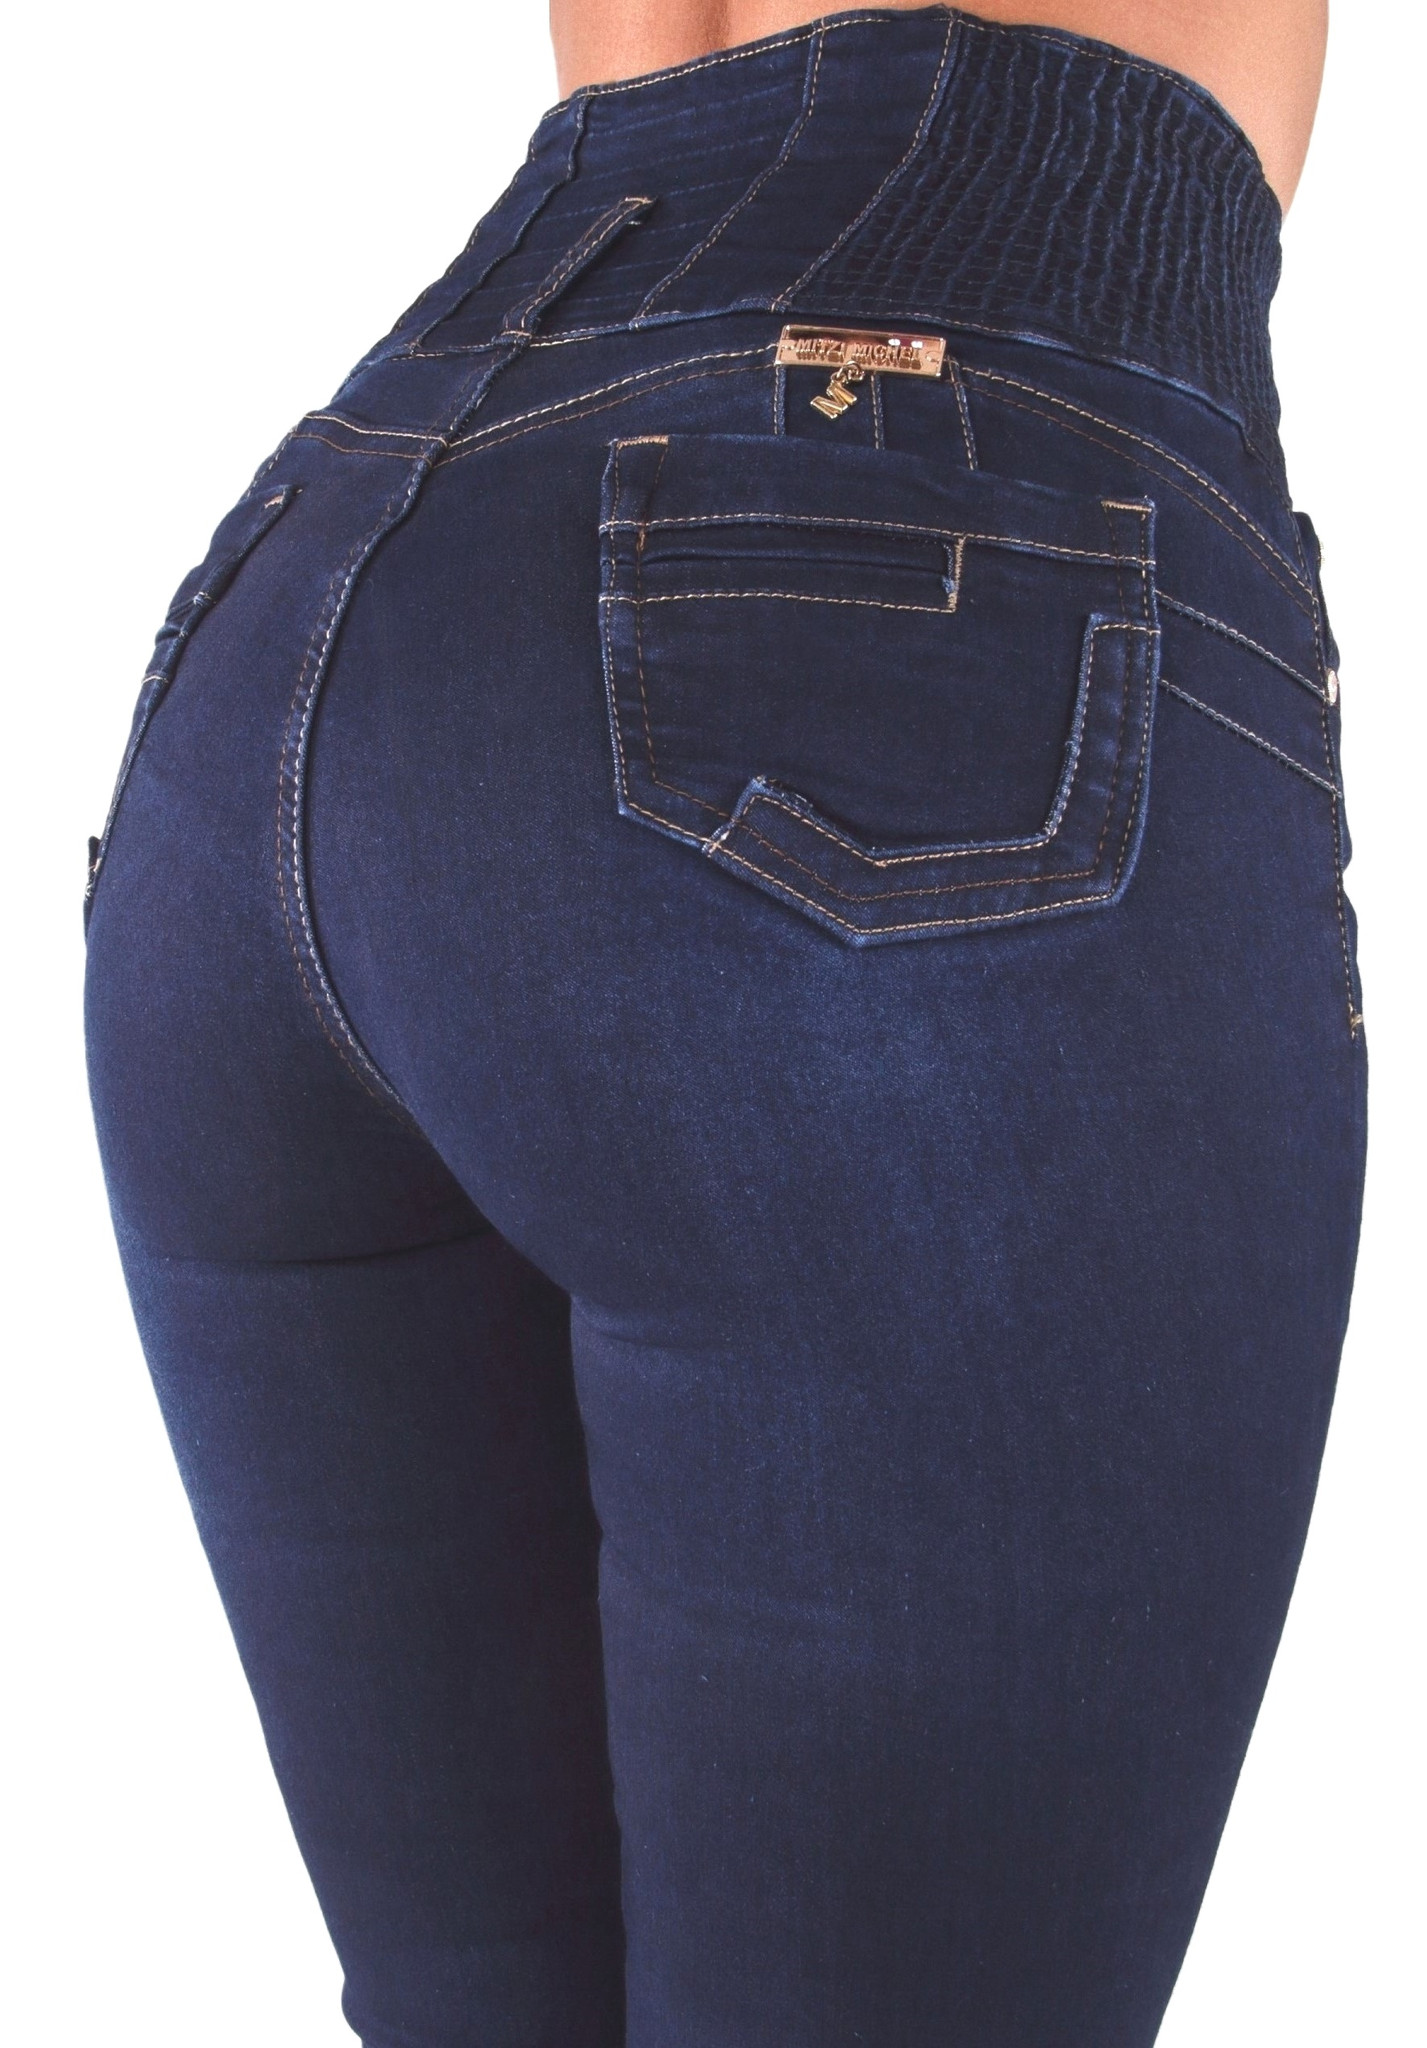 Plus//Junior Size Colombian Design Butt Lift Levanta Cola Skinny Jeans